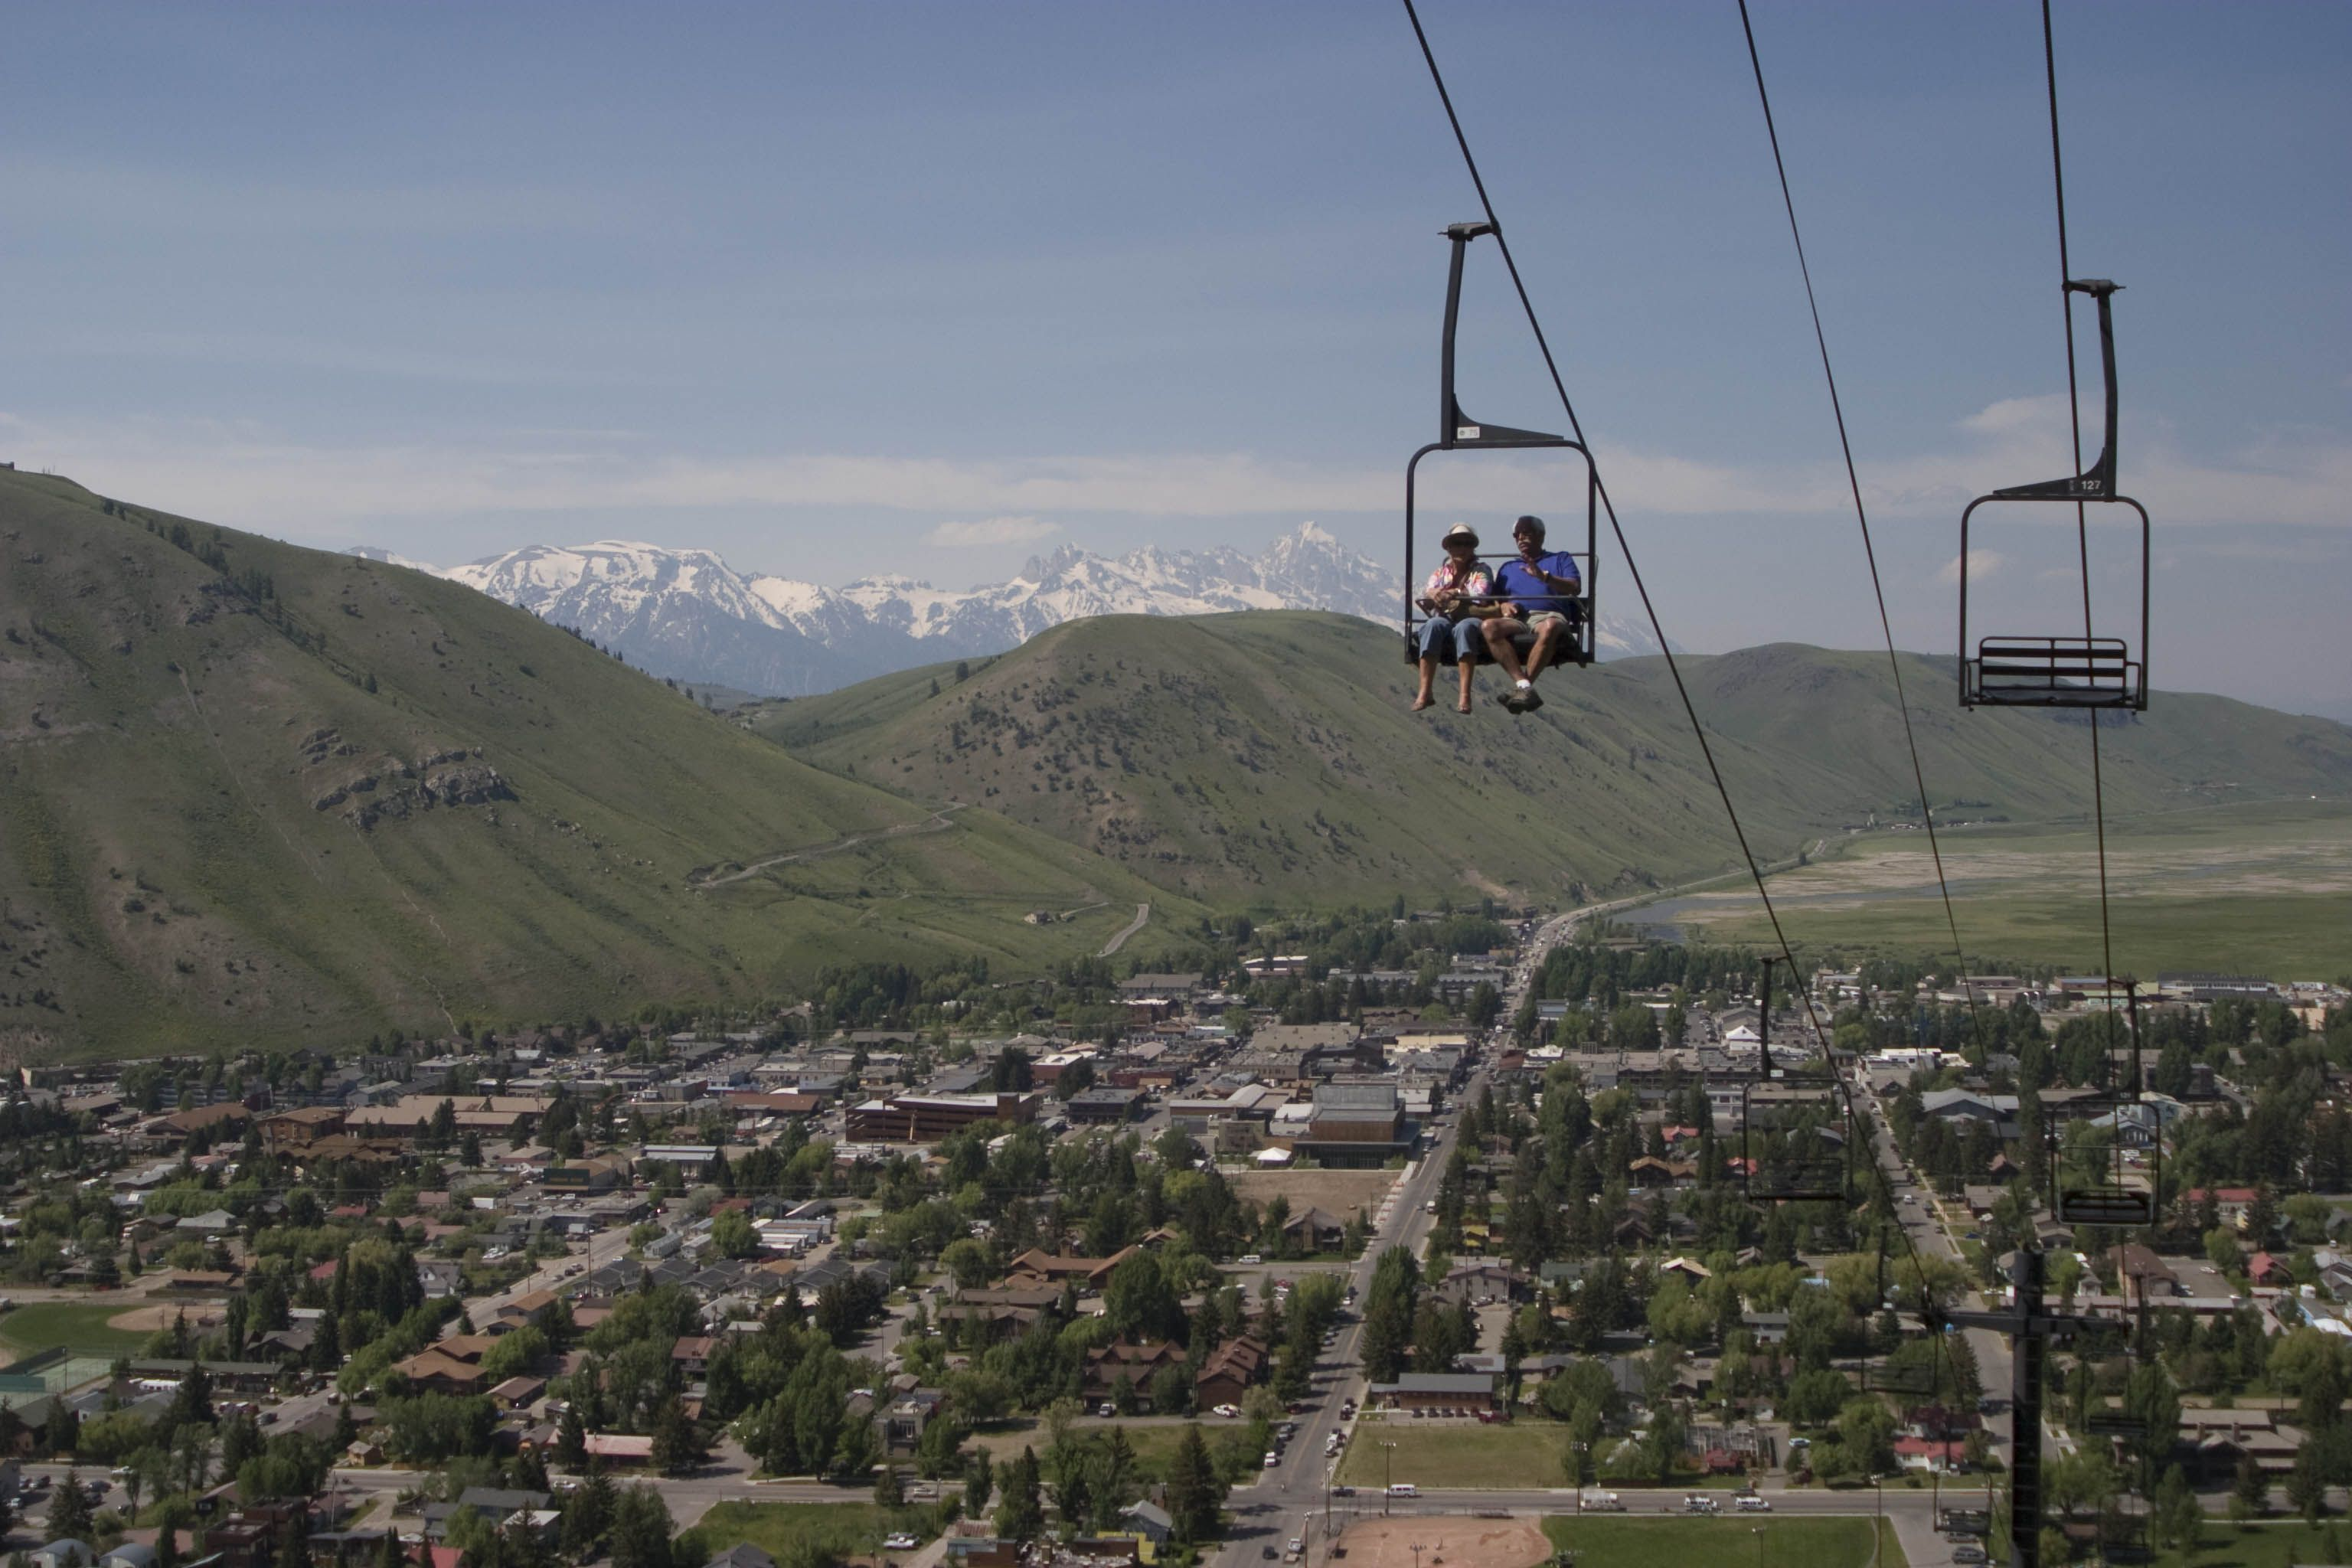 Scenic Chairlift Rides Up Snow King Mountain Are A Must Do Simply Take In The View Or Hike Around Up Top You Won T Be Scenic Kings Mountain Summer Activities